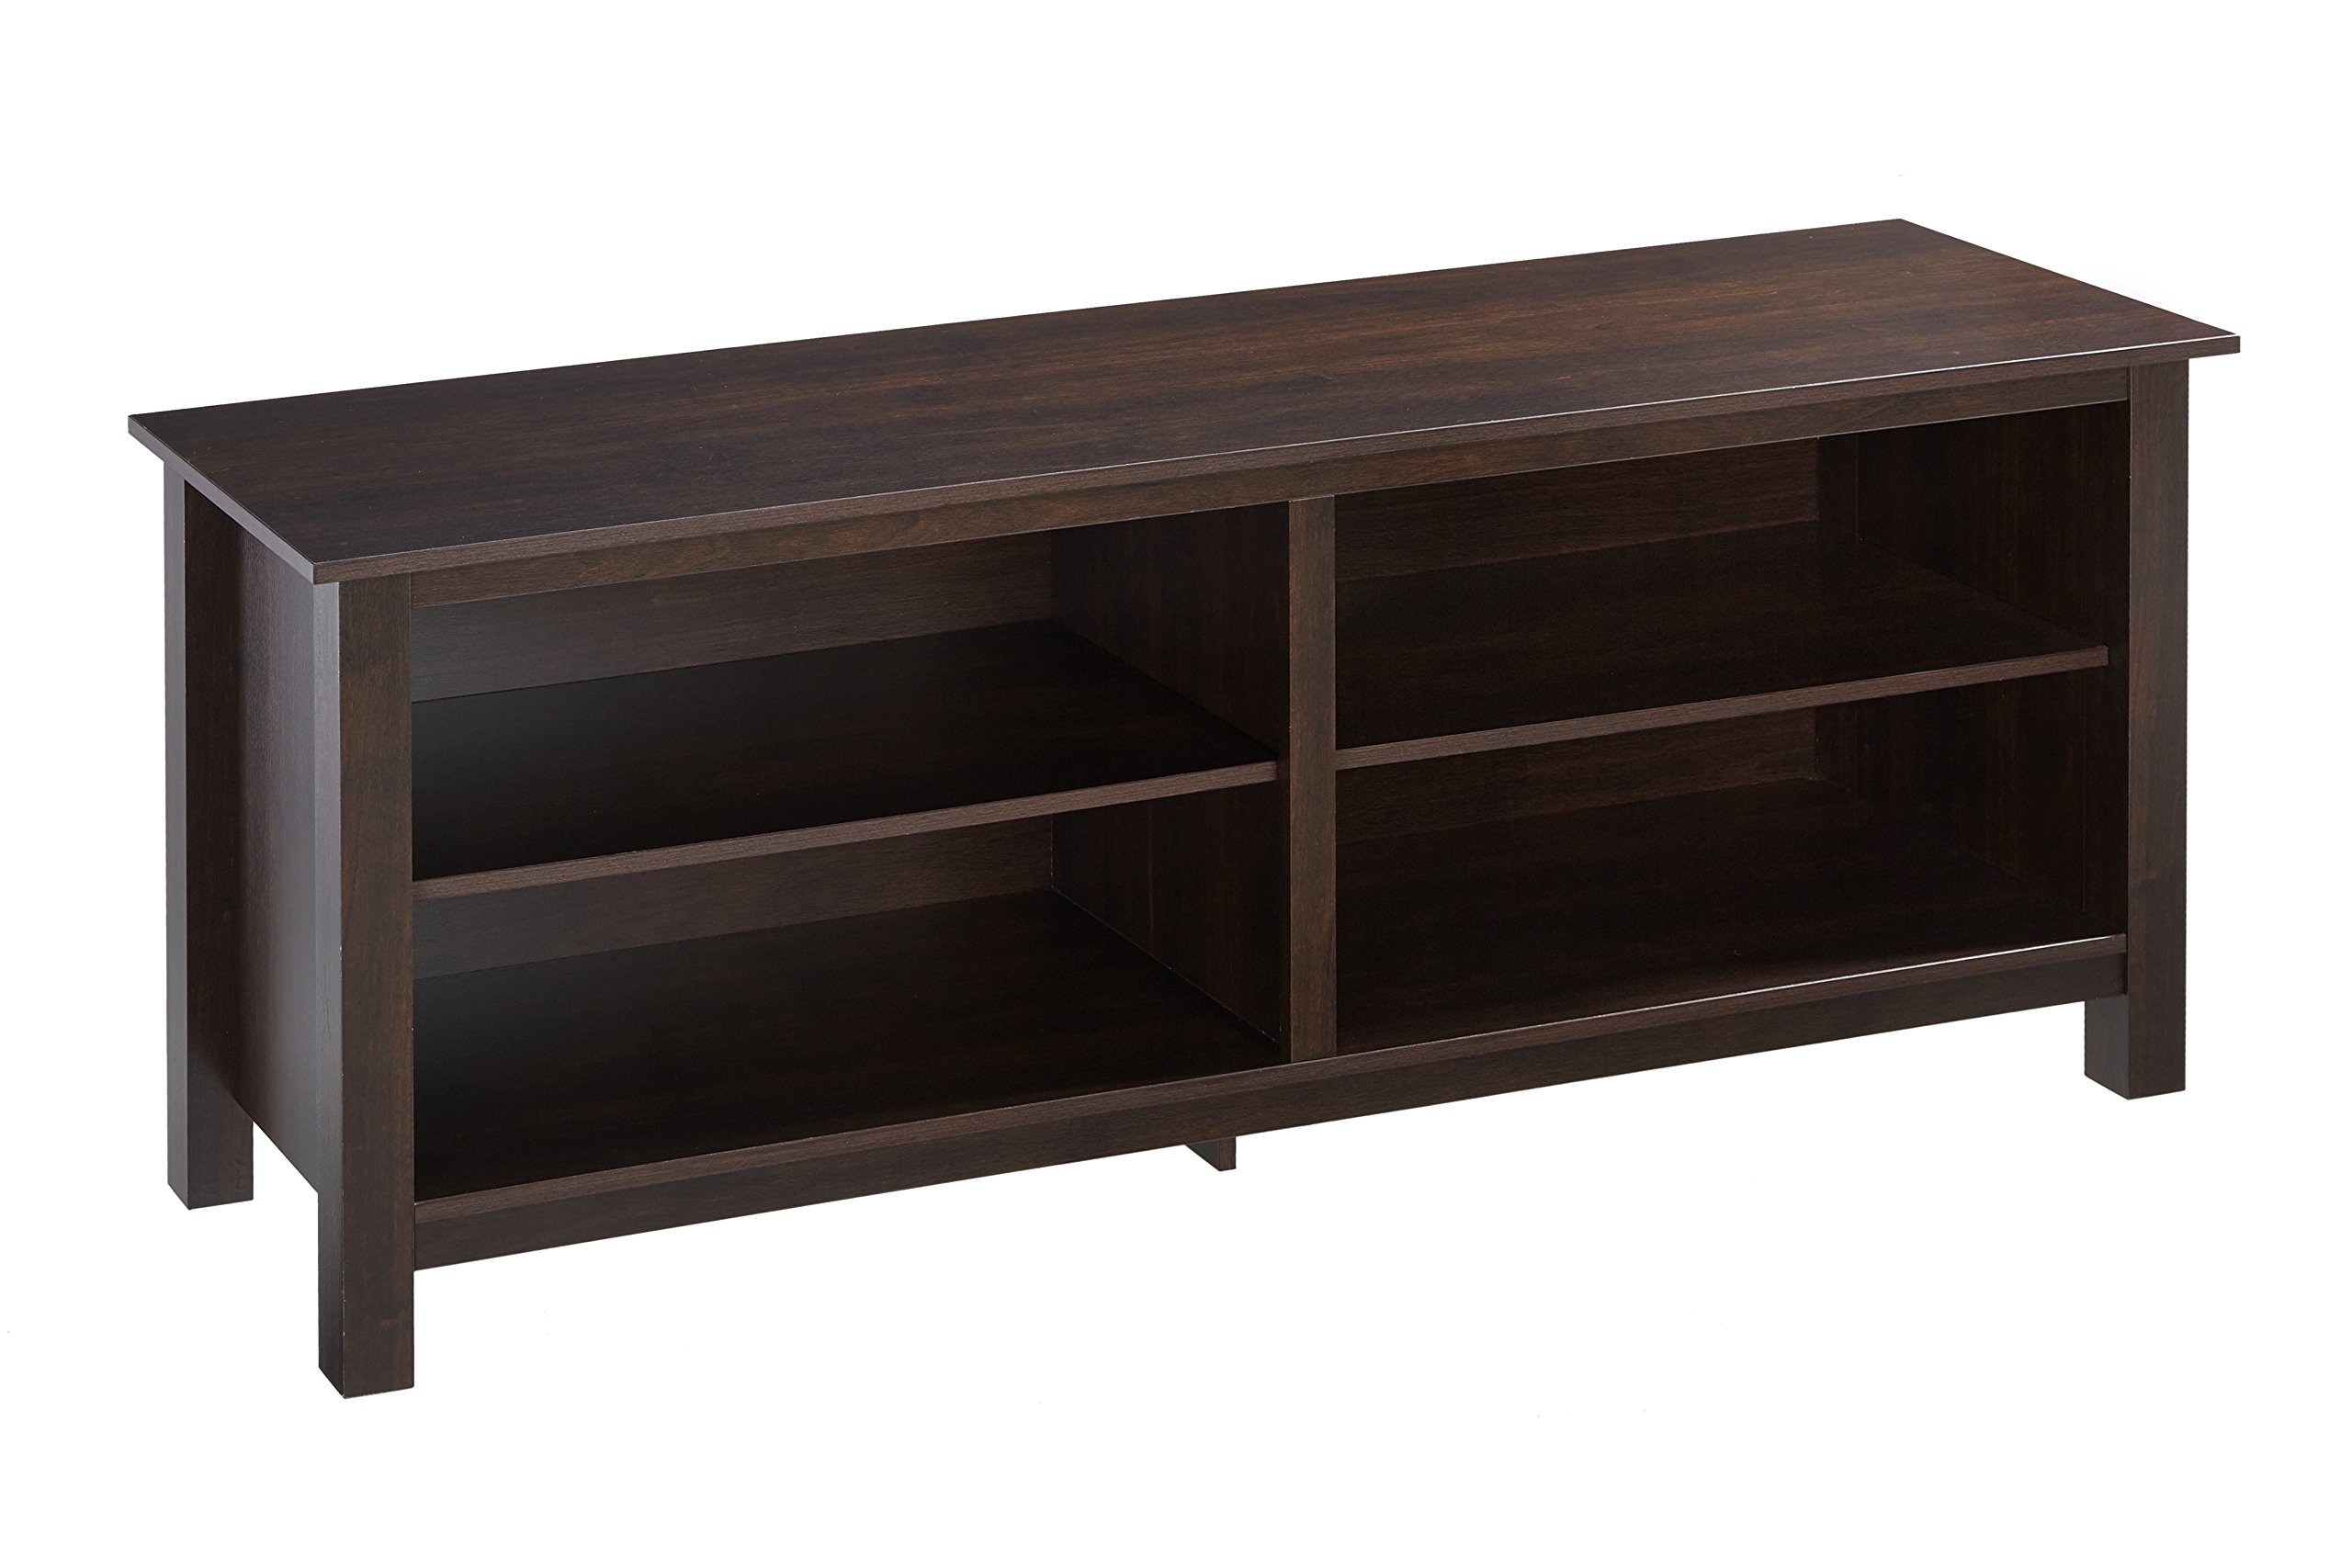 Rockpoint Wood TV Stand Storage Console, 58'', Russet Brown